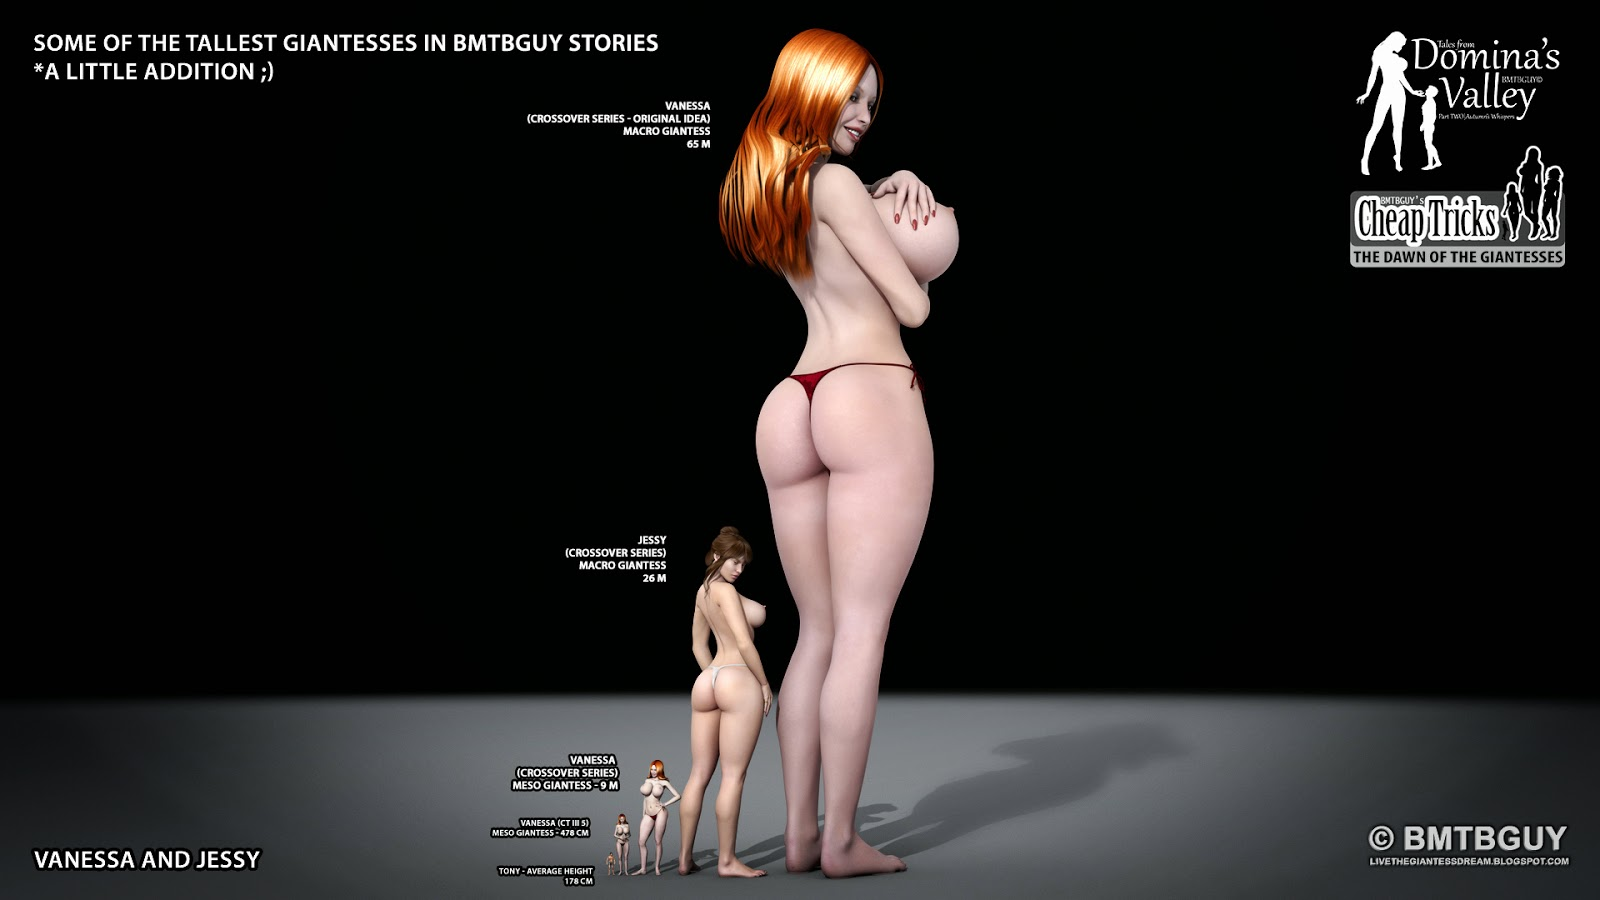 Giantess erotic stories exploited image